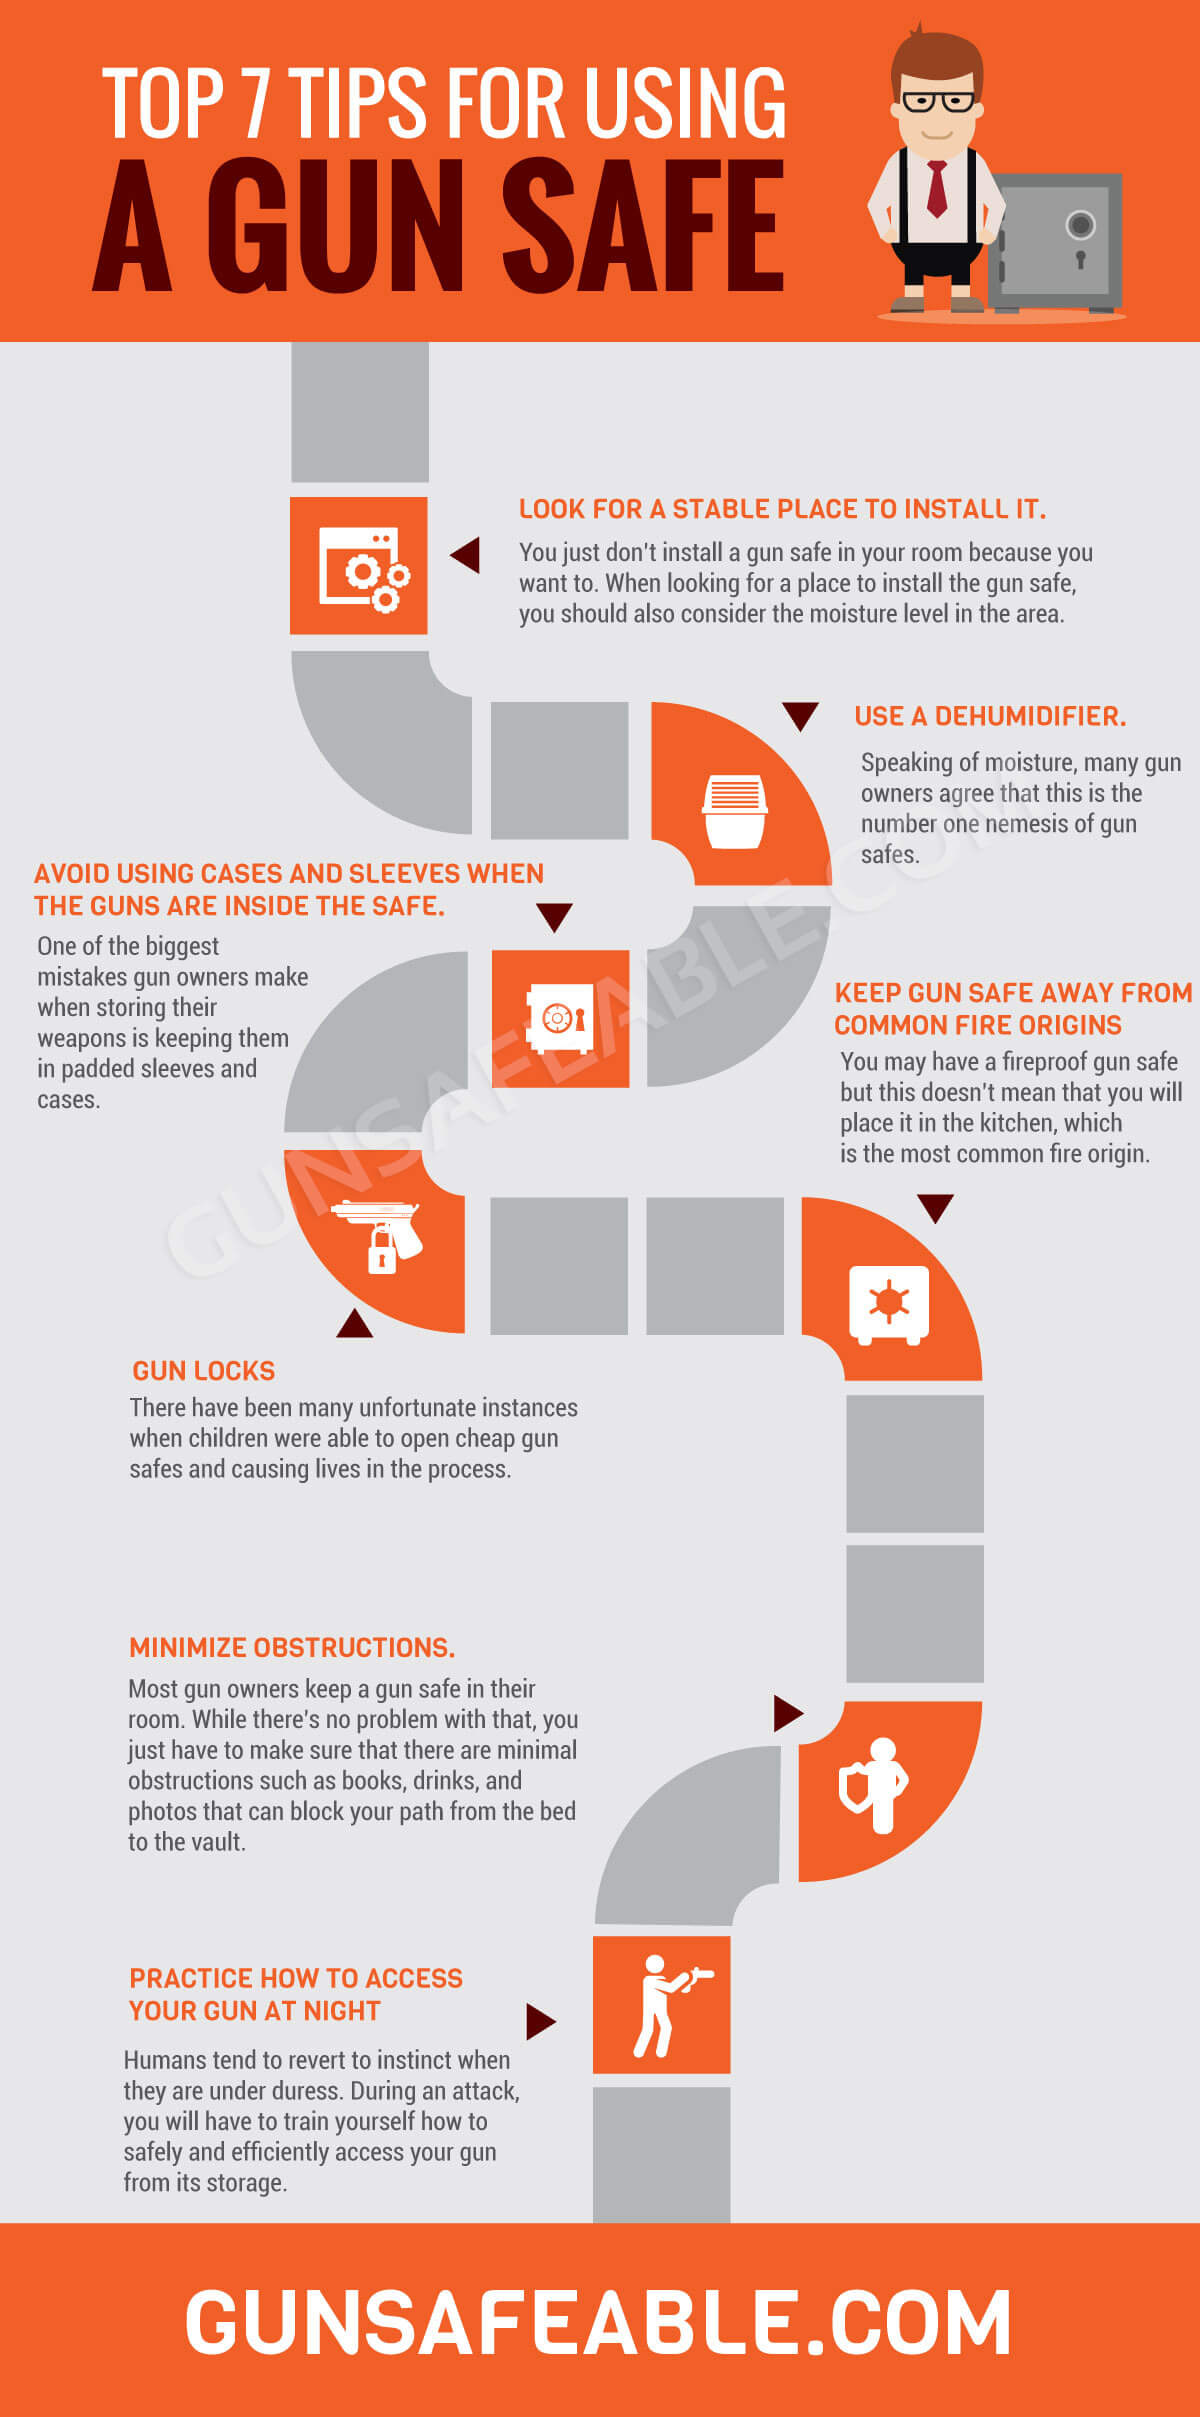 [INFOGRAPHIC] Top Seven Tips for Using a Gun Safe